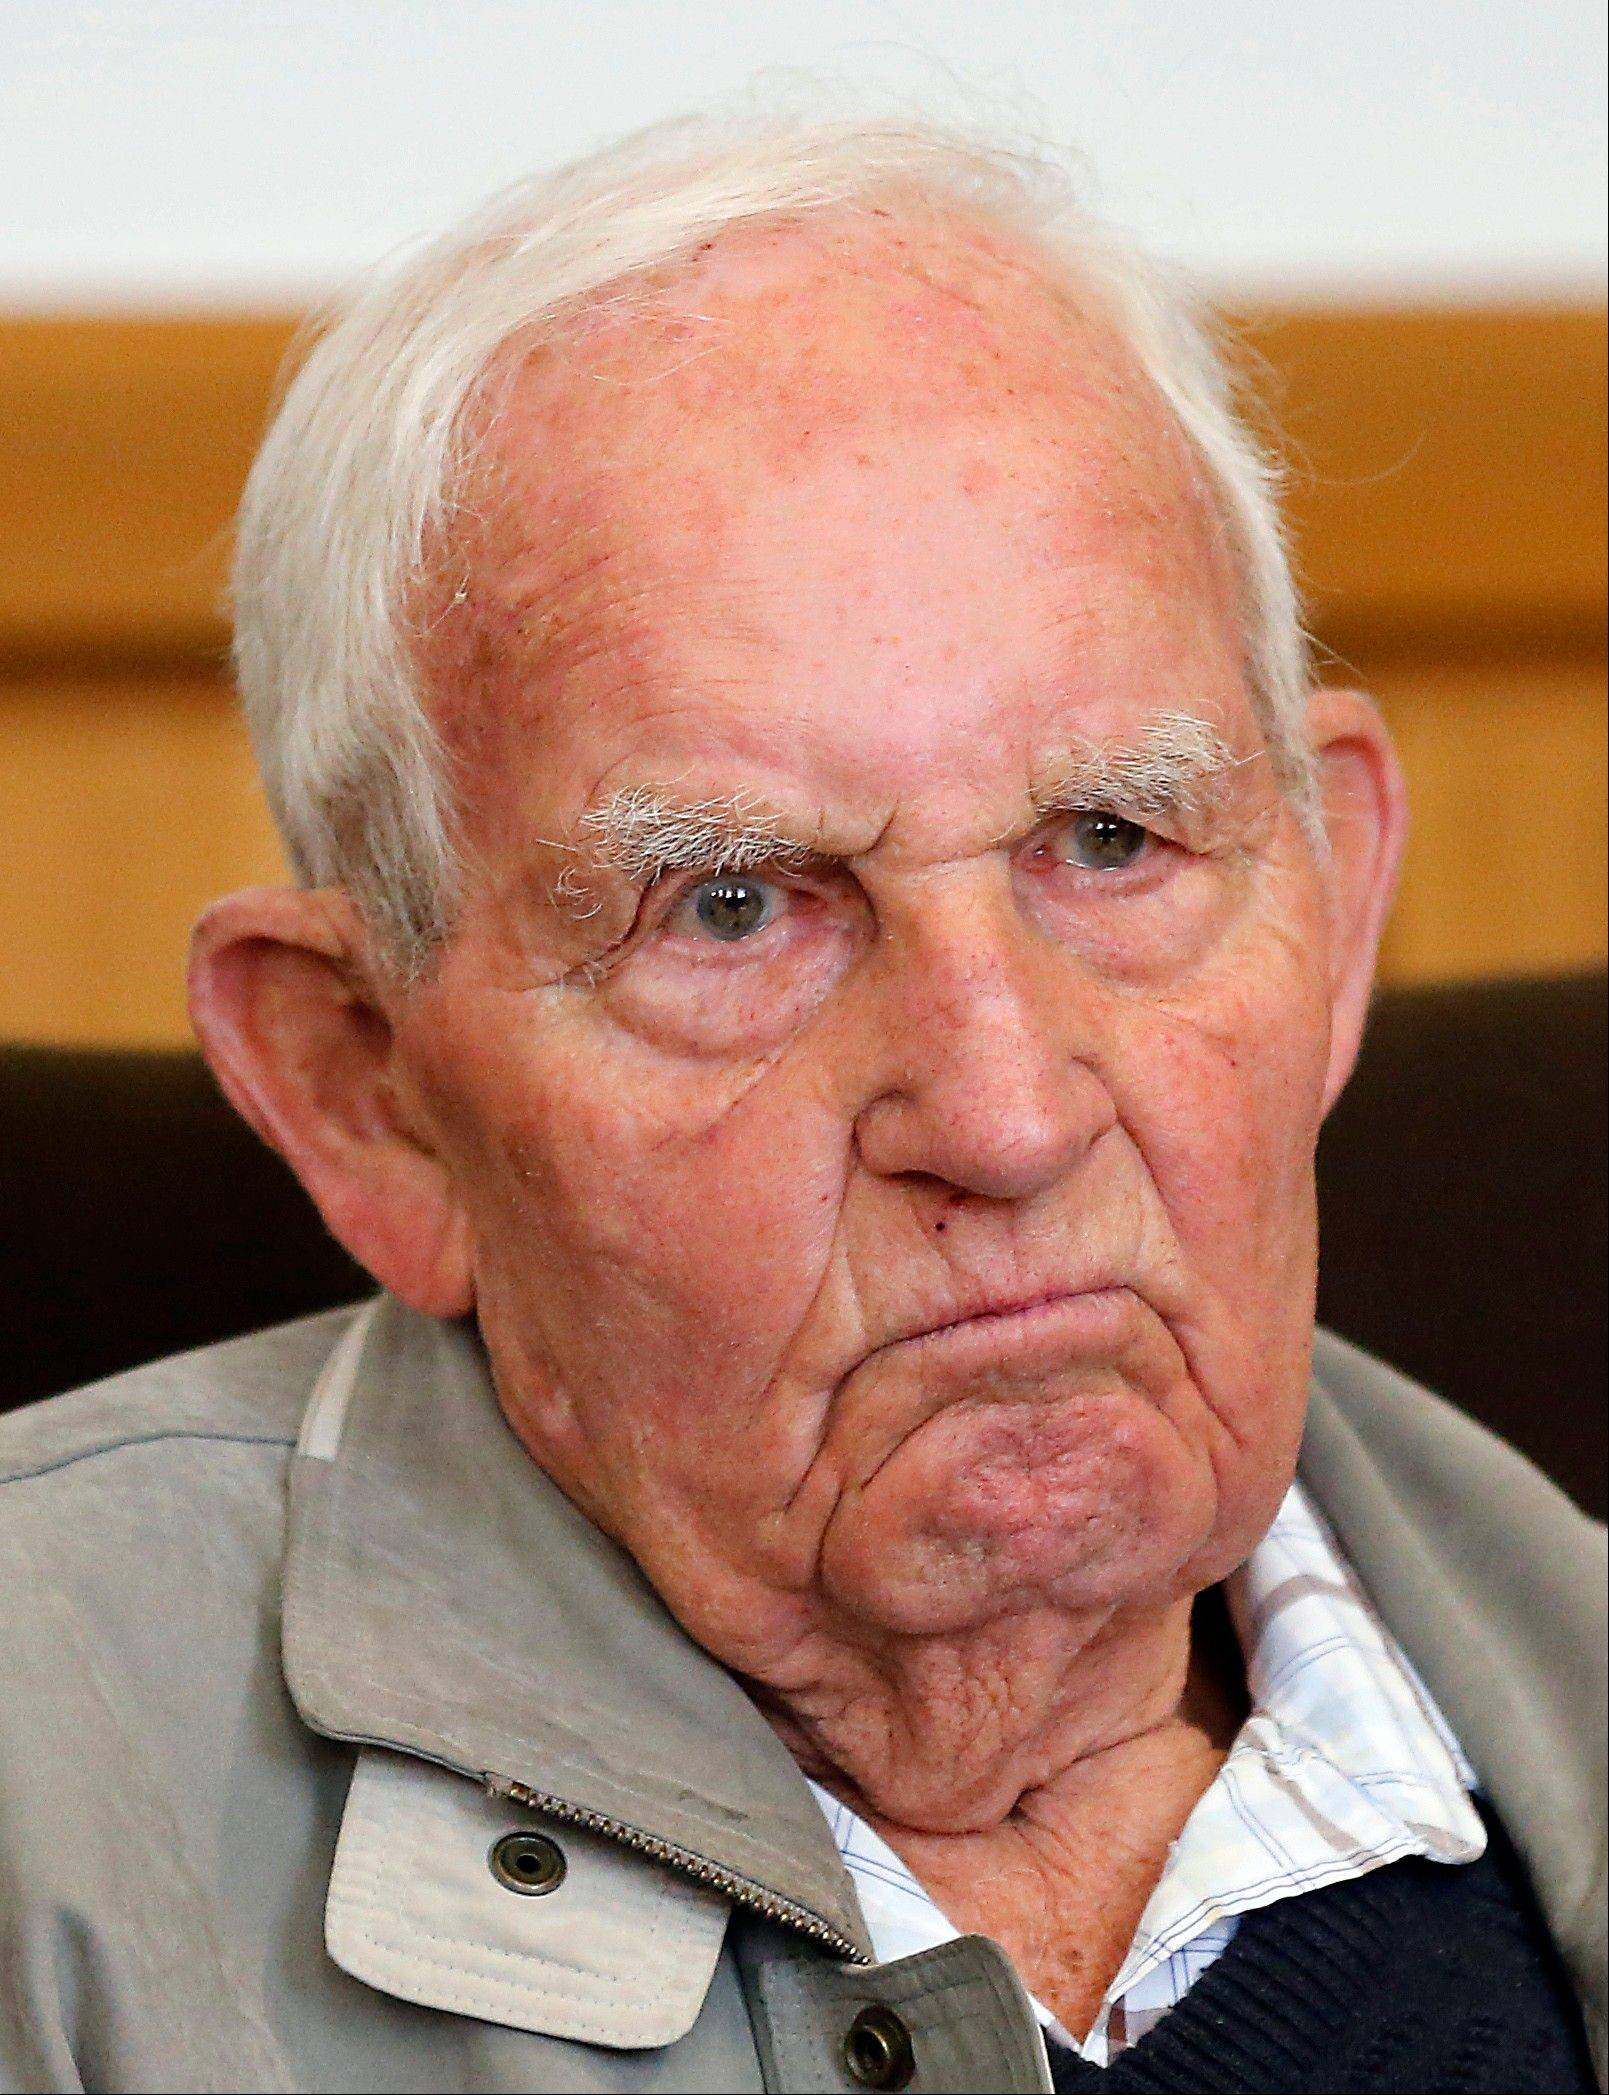 Siert Bruins, a 92-year-old former member of the Nazi Waffen SS, sits Monday in a courtroom in Hagen, Germany. Dutch-born Siert Bruins, who is now a German, is on trial on allegations he executed a Dutch resistance fighter in 1944.